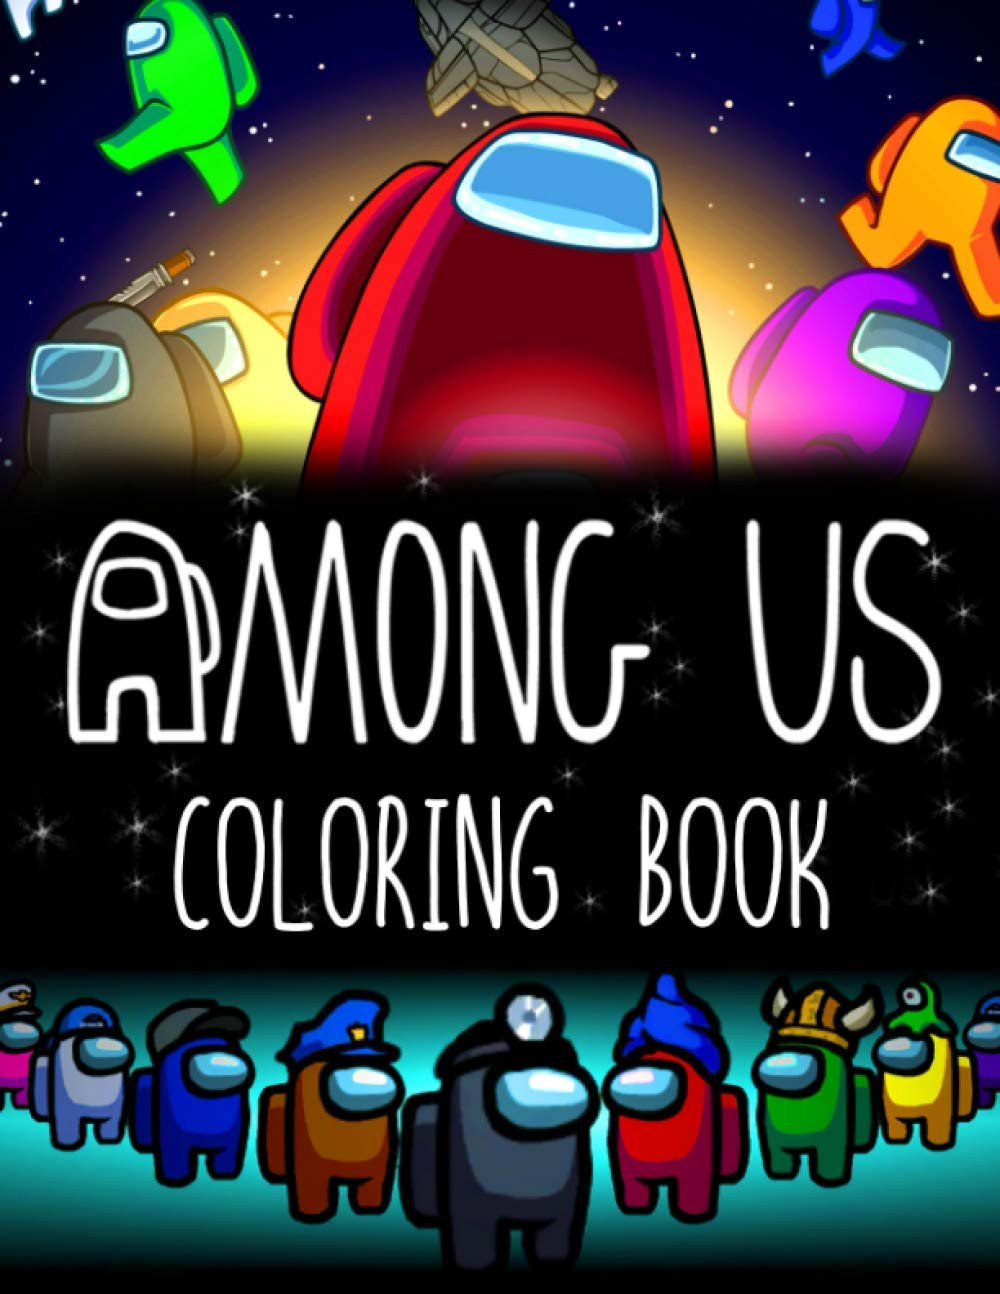 Among Us Coloring Book